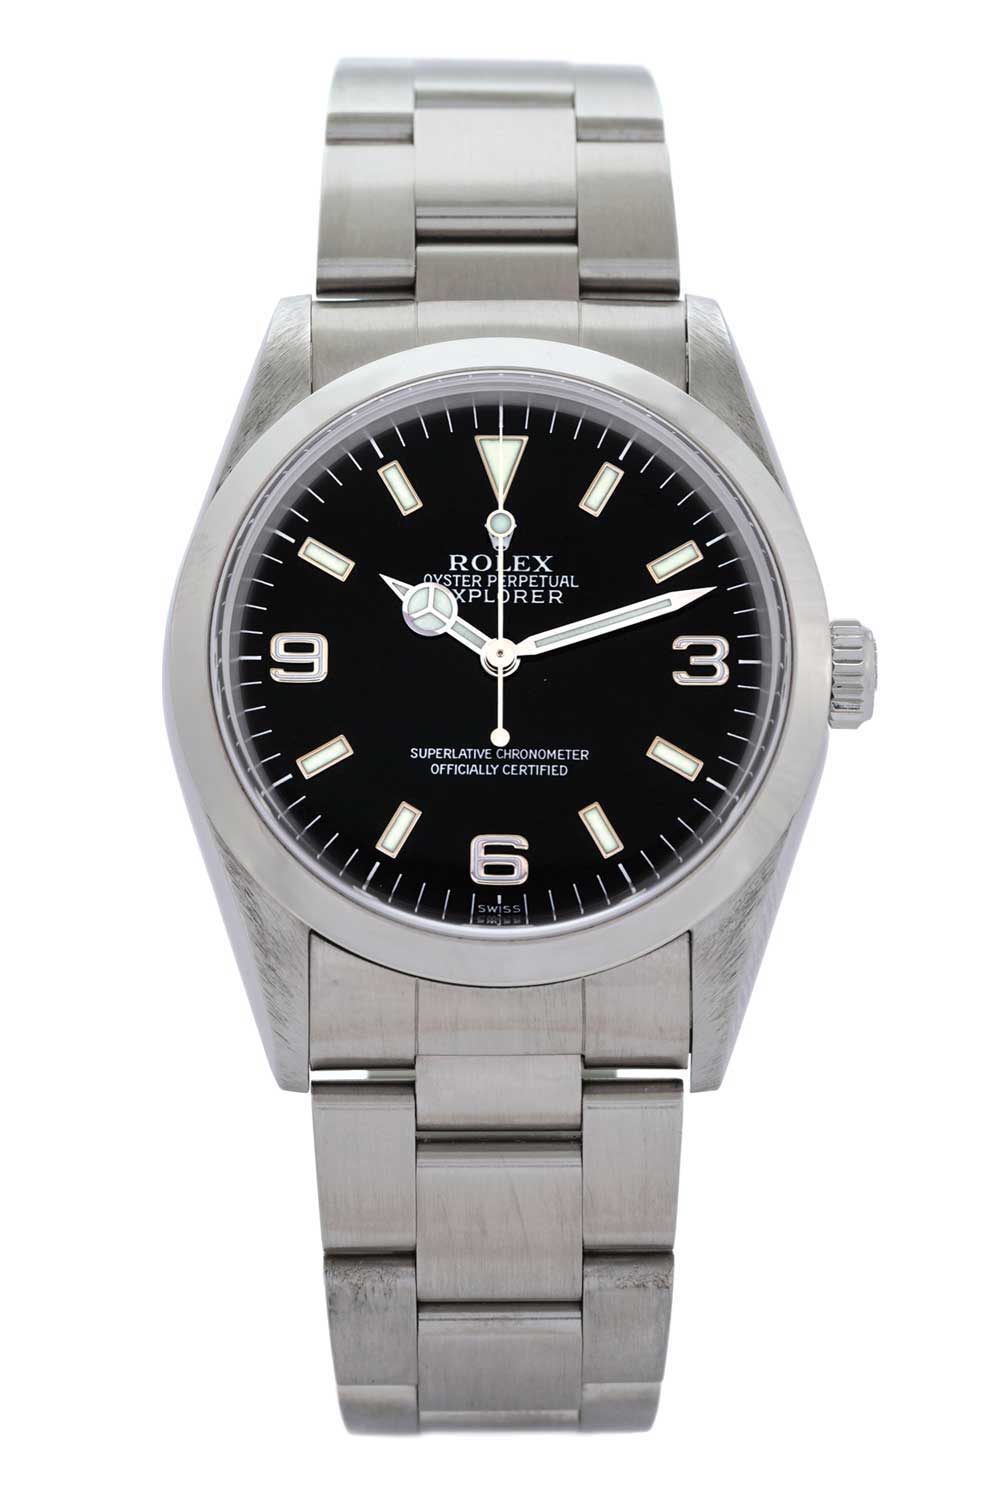 Introduced in the late 1980s, the Rolex Explorer ref. 14270 was in production for almost a decade